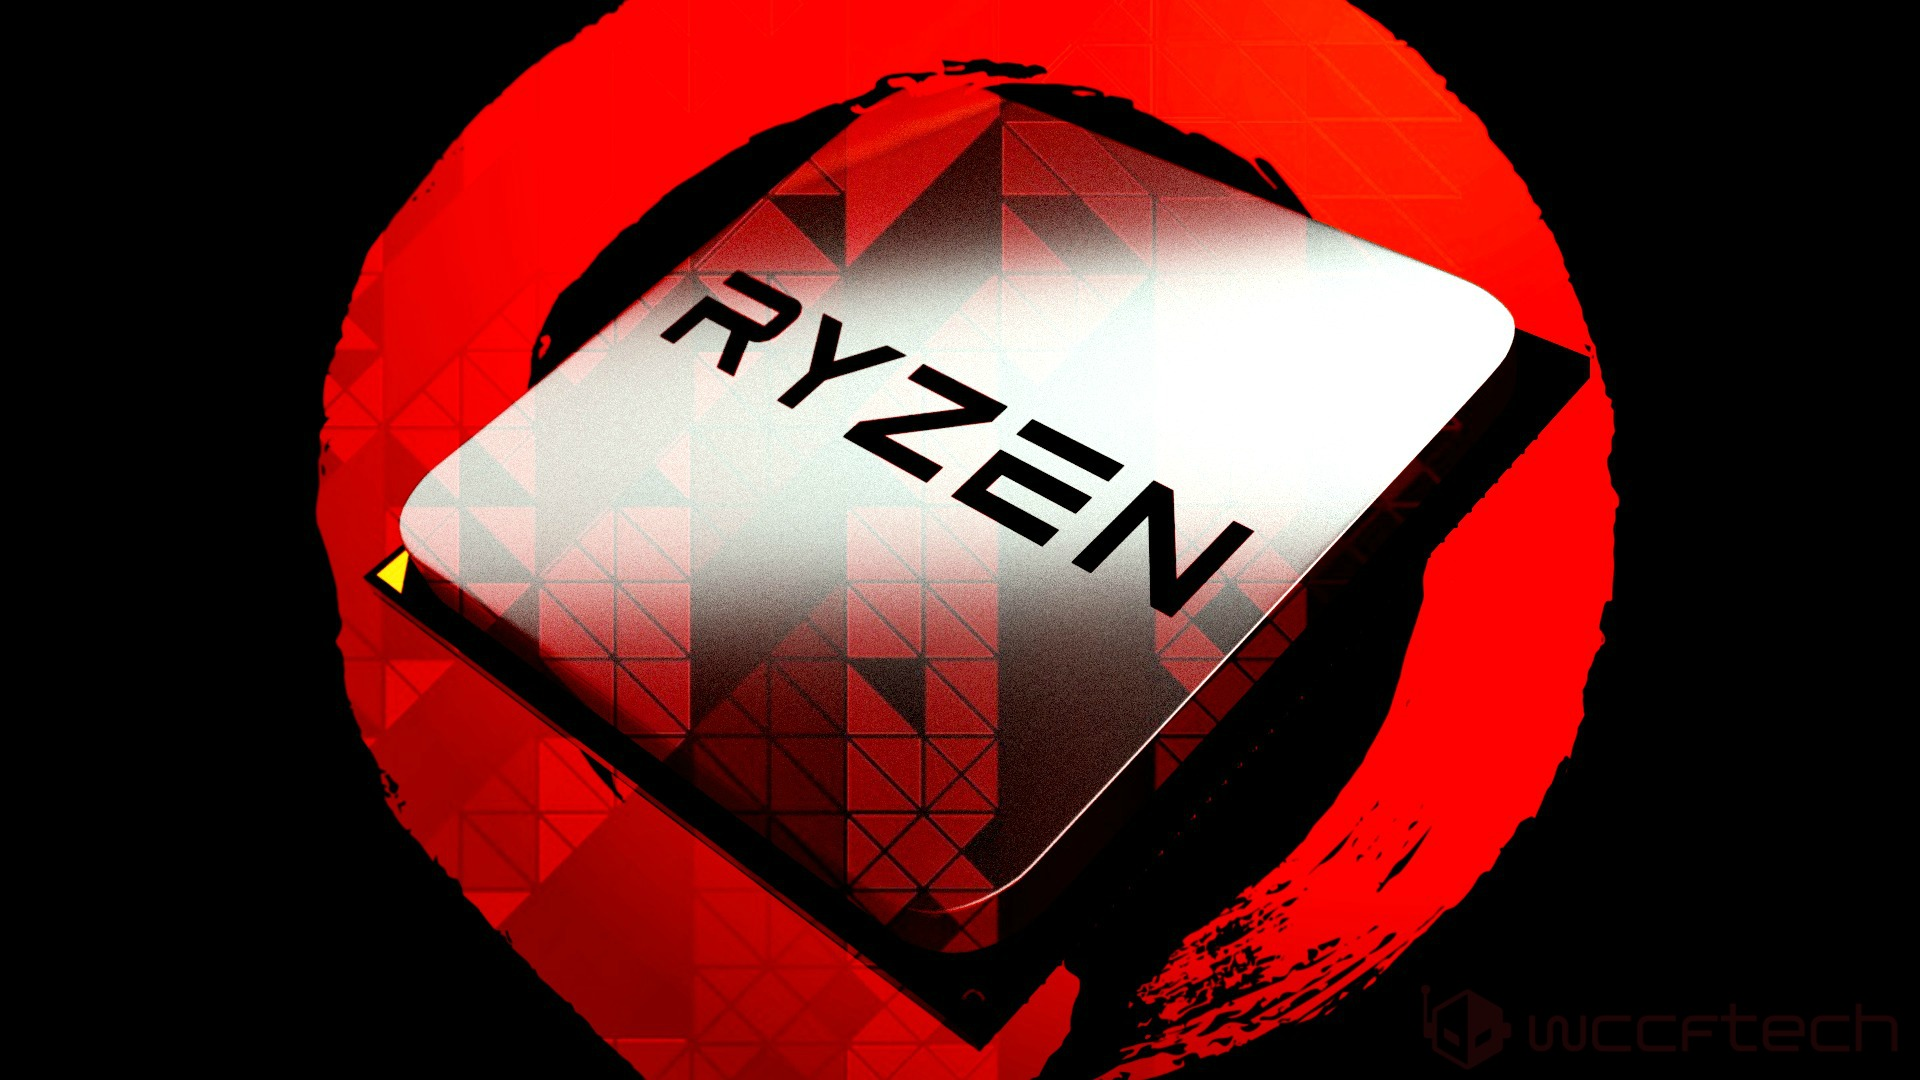 AMD Ryzen Performance Negatively Affected by Windows 10